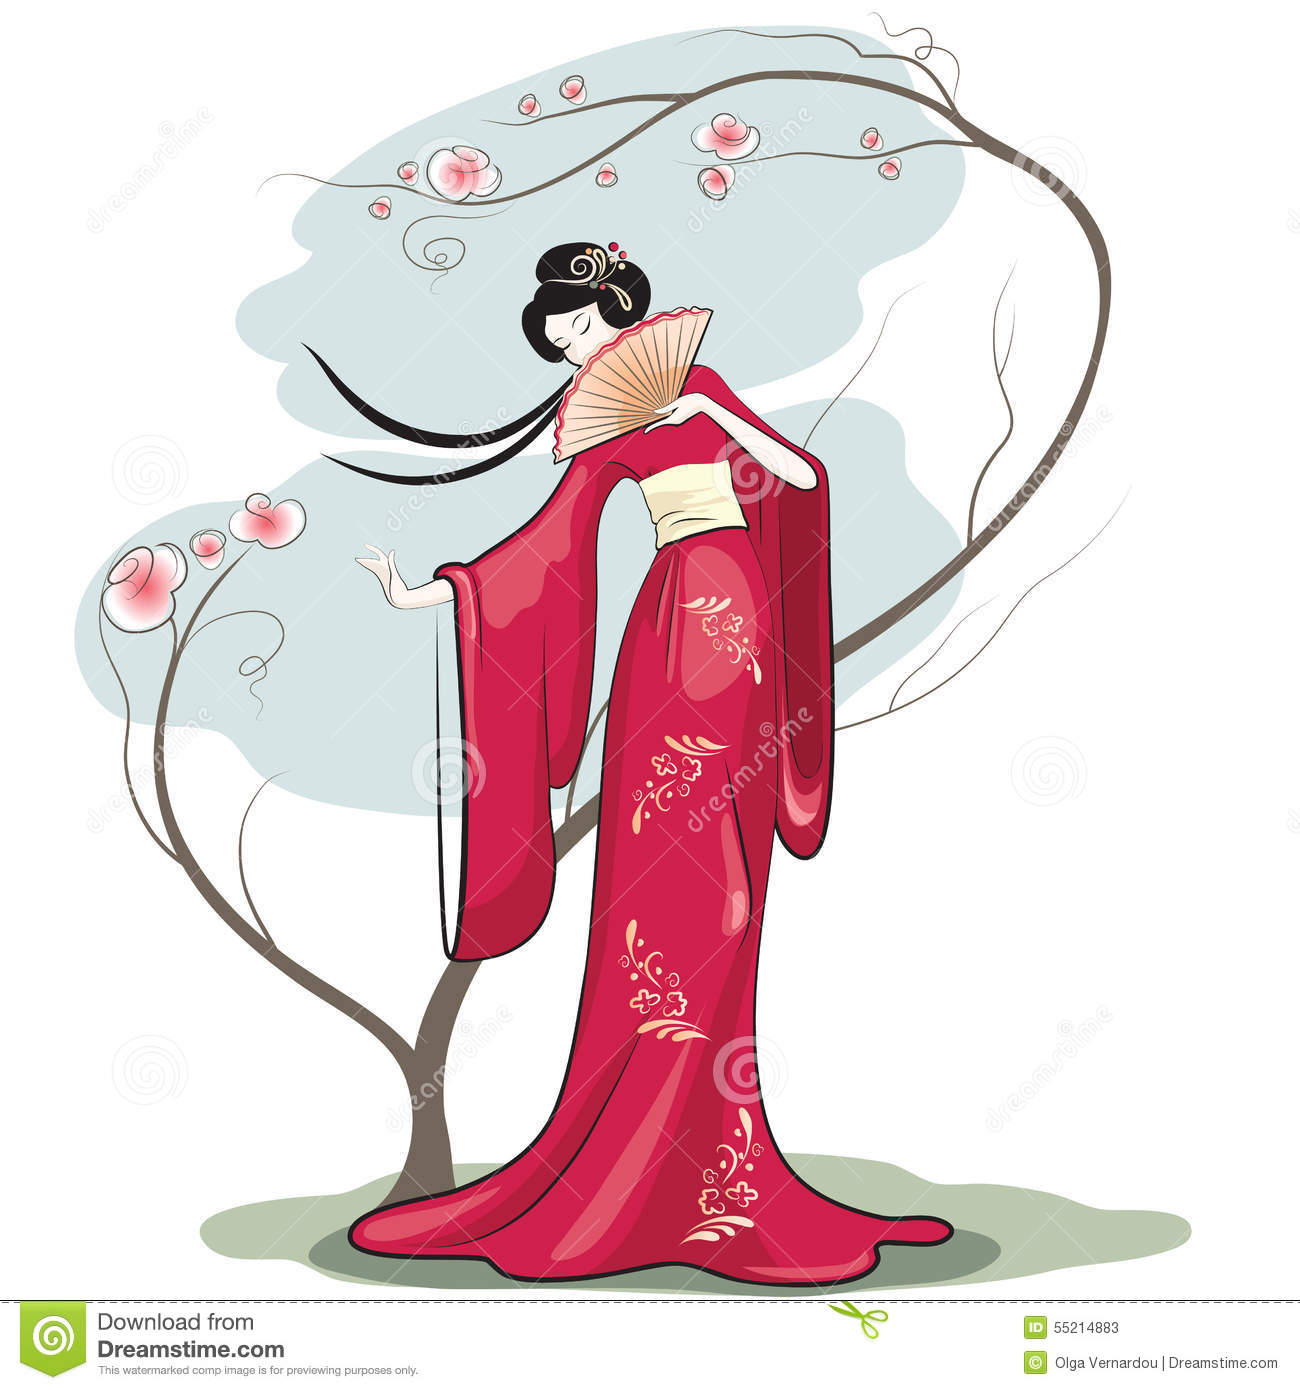 Art Unlimited Sportswear: Chinese Woman Stock Vector. Illustration Of Flower